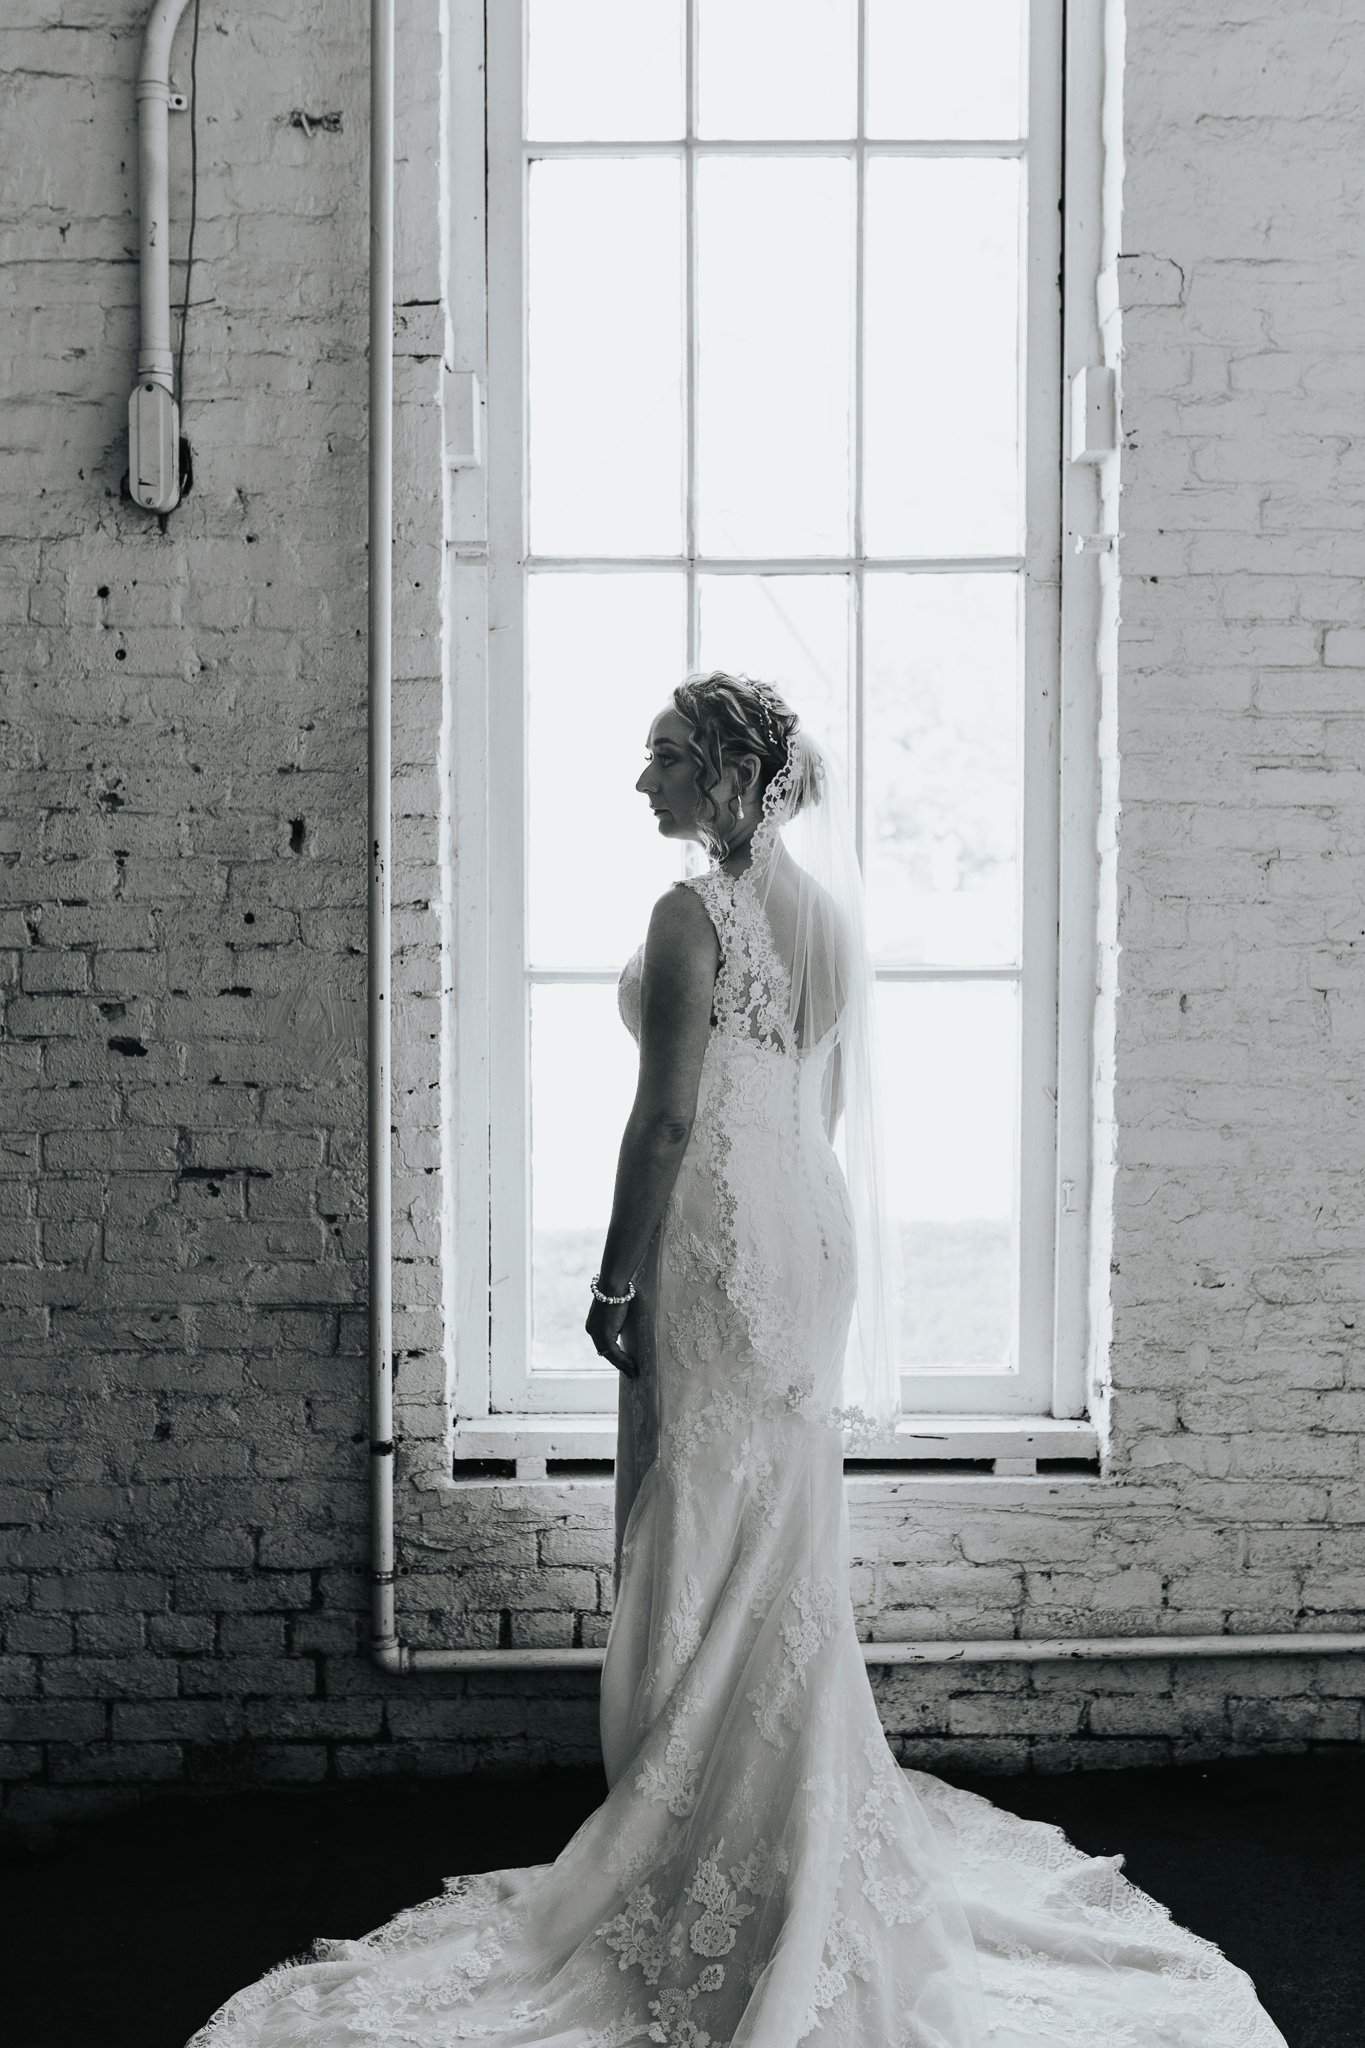 0027 Ariana Jordan Photo - Lexington Ky Wedding Round Barn  3117.jpg